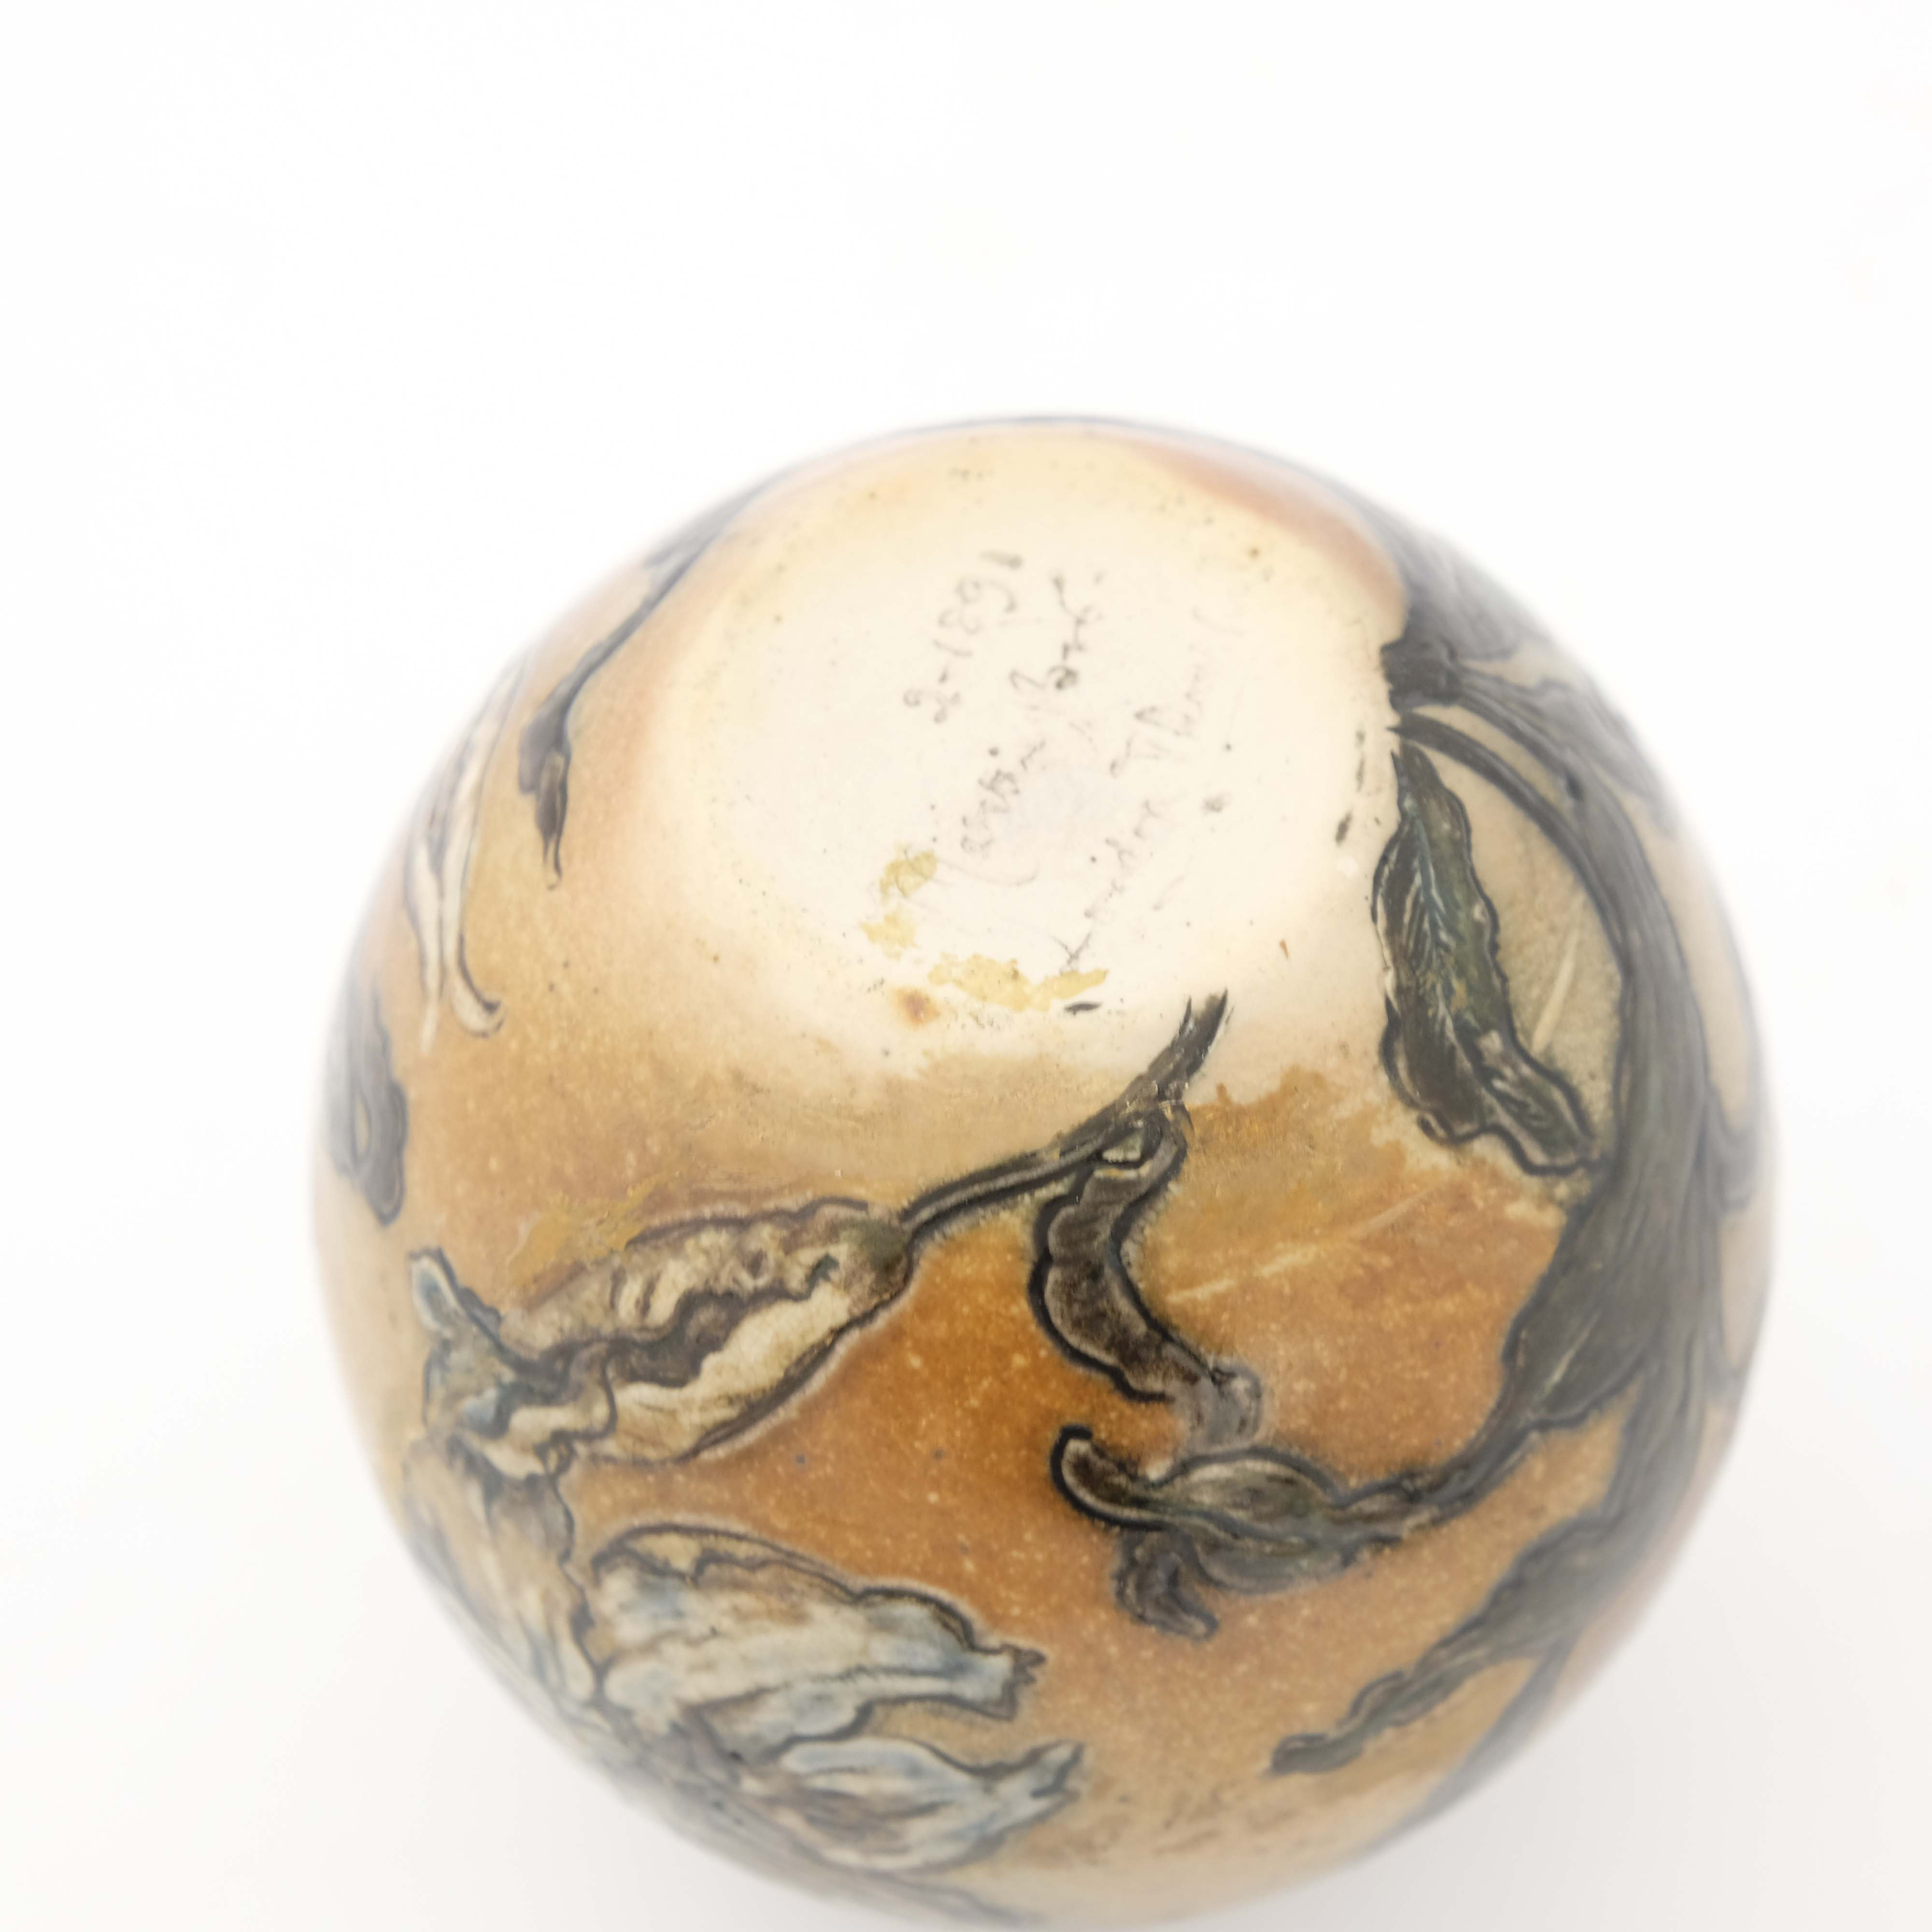 Edwin Martin for Martin Brothers, a stoneware vase - Image 5 of 5